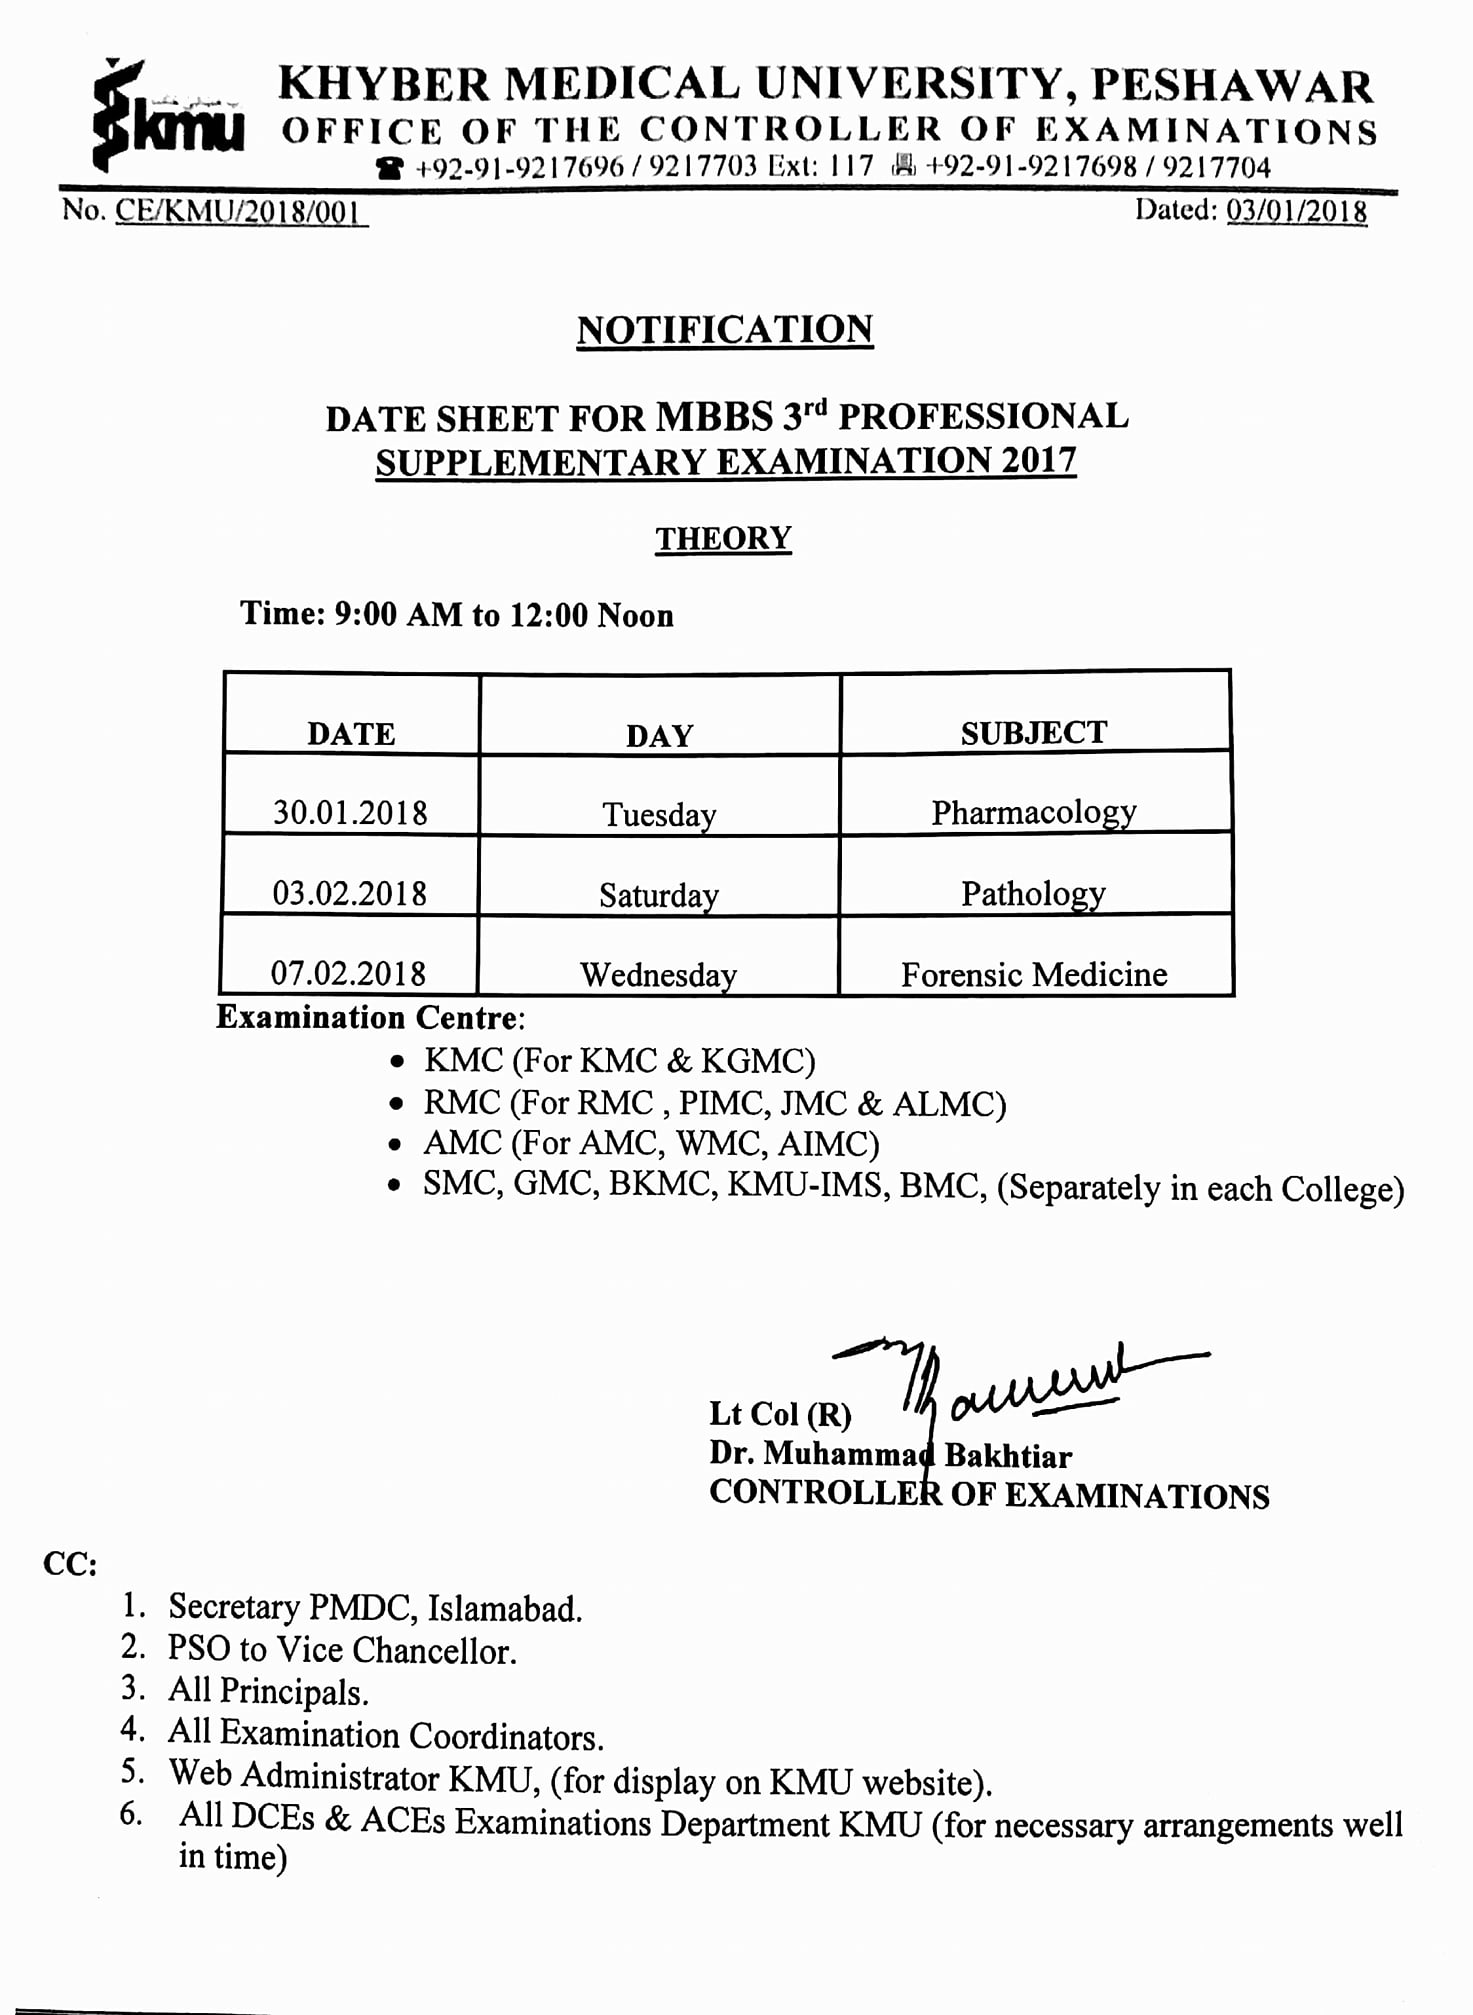 Datesheet for MBBS 3rd Professional Supplementary